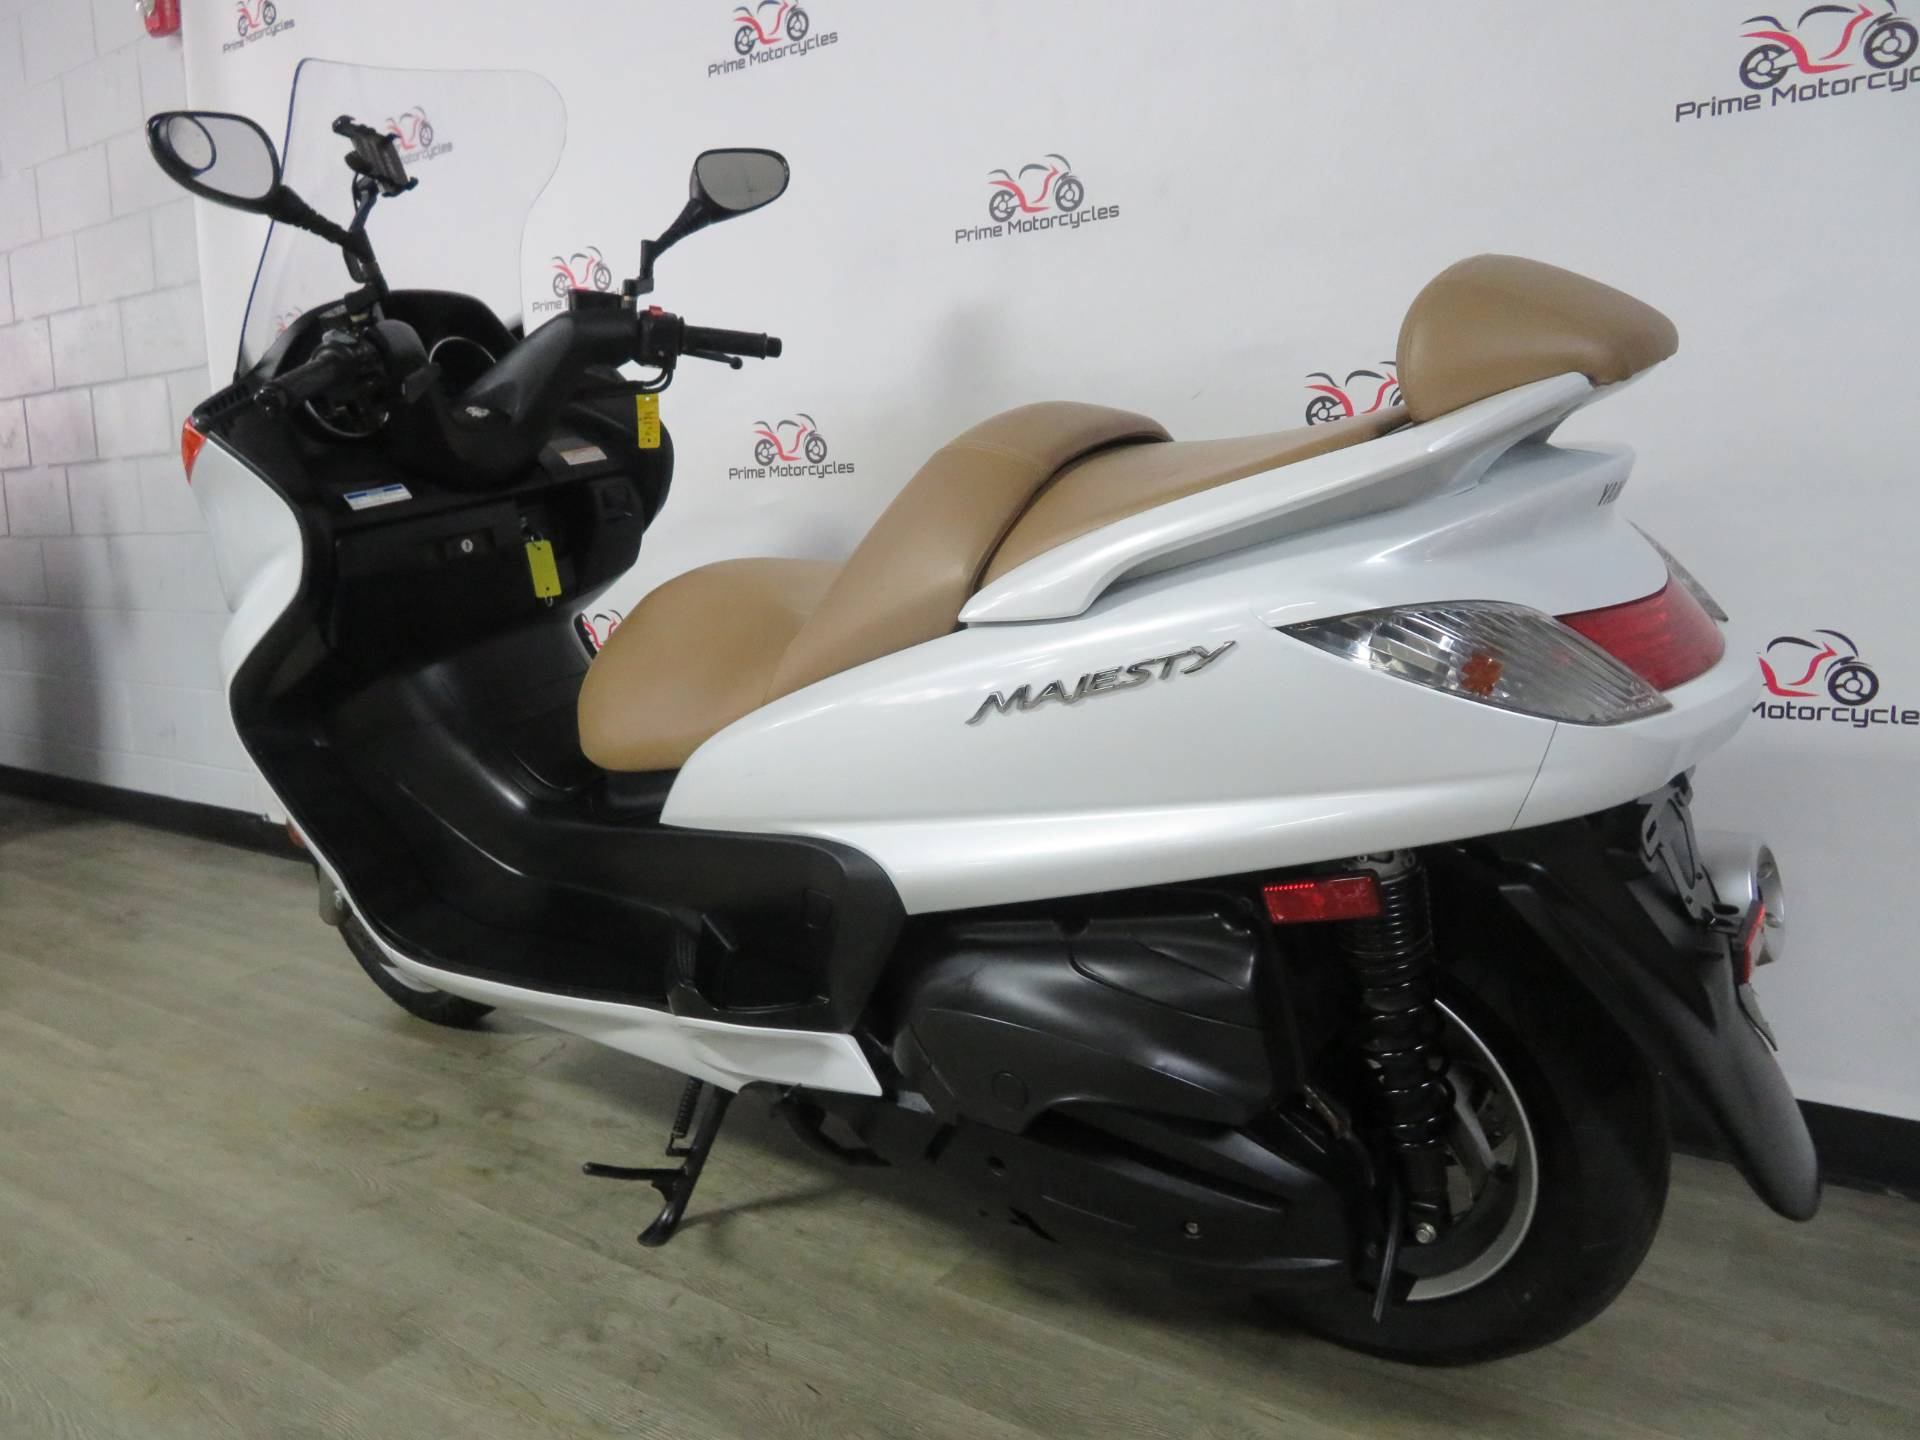 2010 Yamaha Majesty in Sanford, Florida - Photo 10